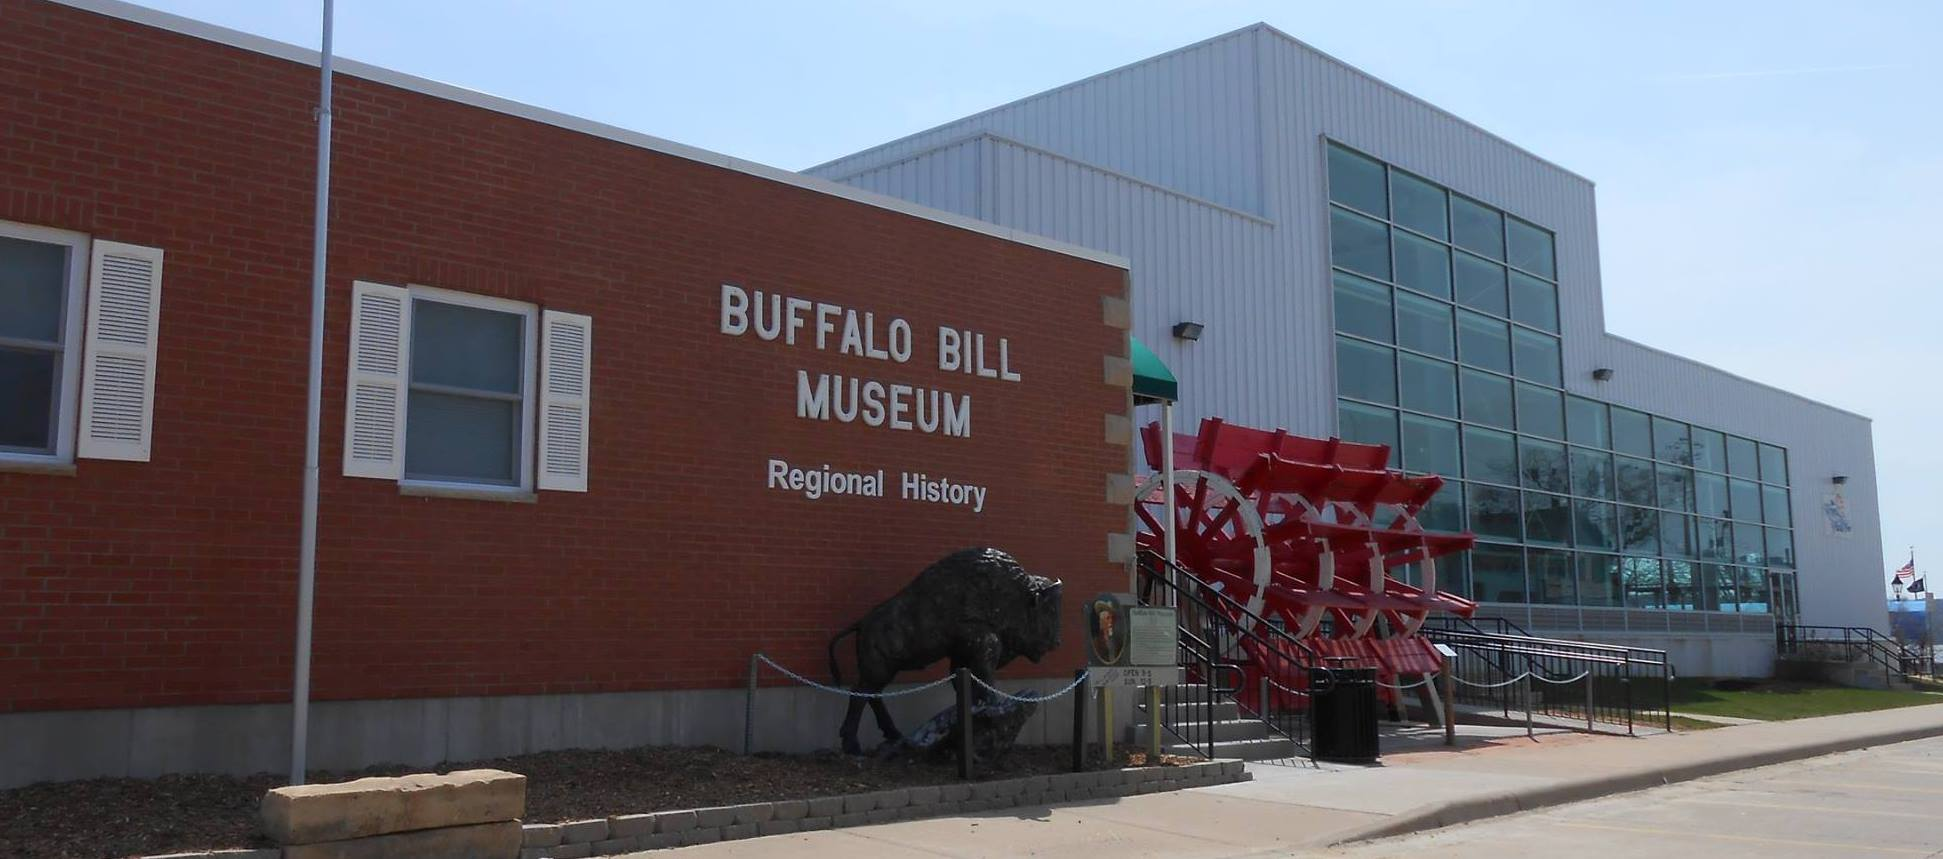 Buffalo Bill Museum Front of the Building